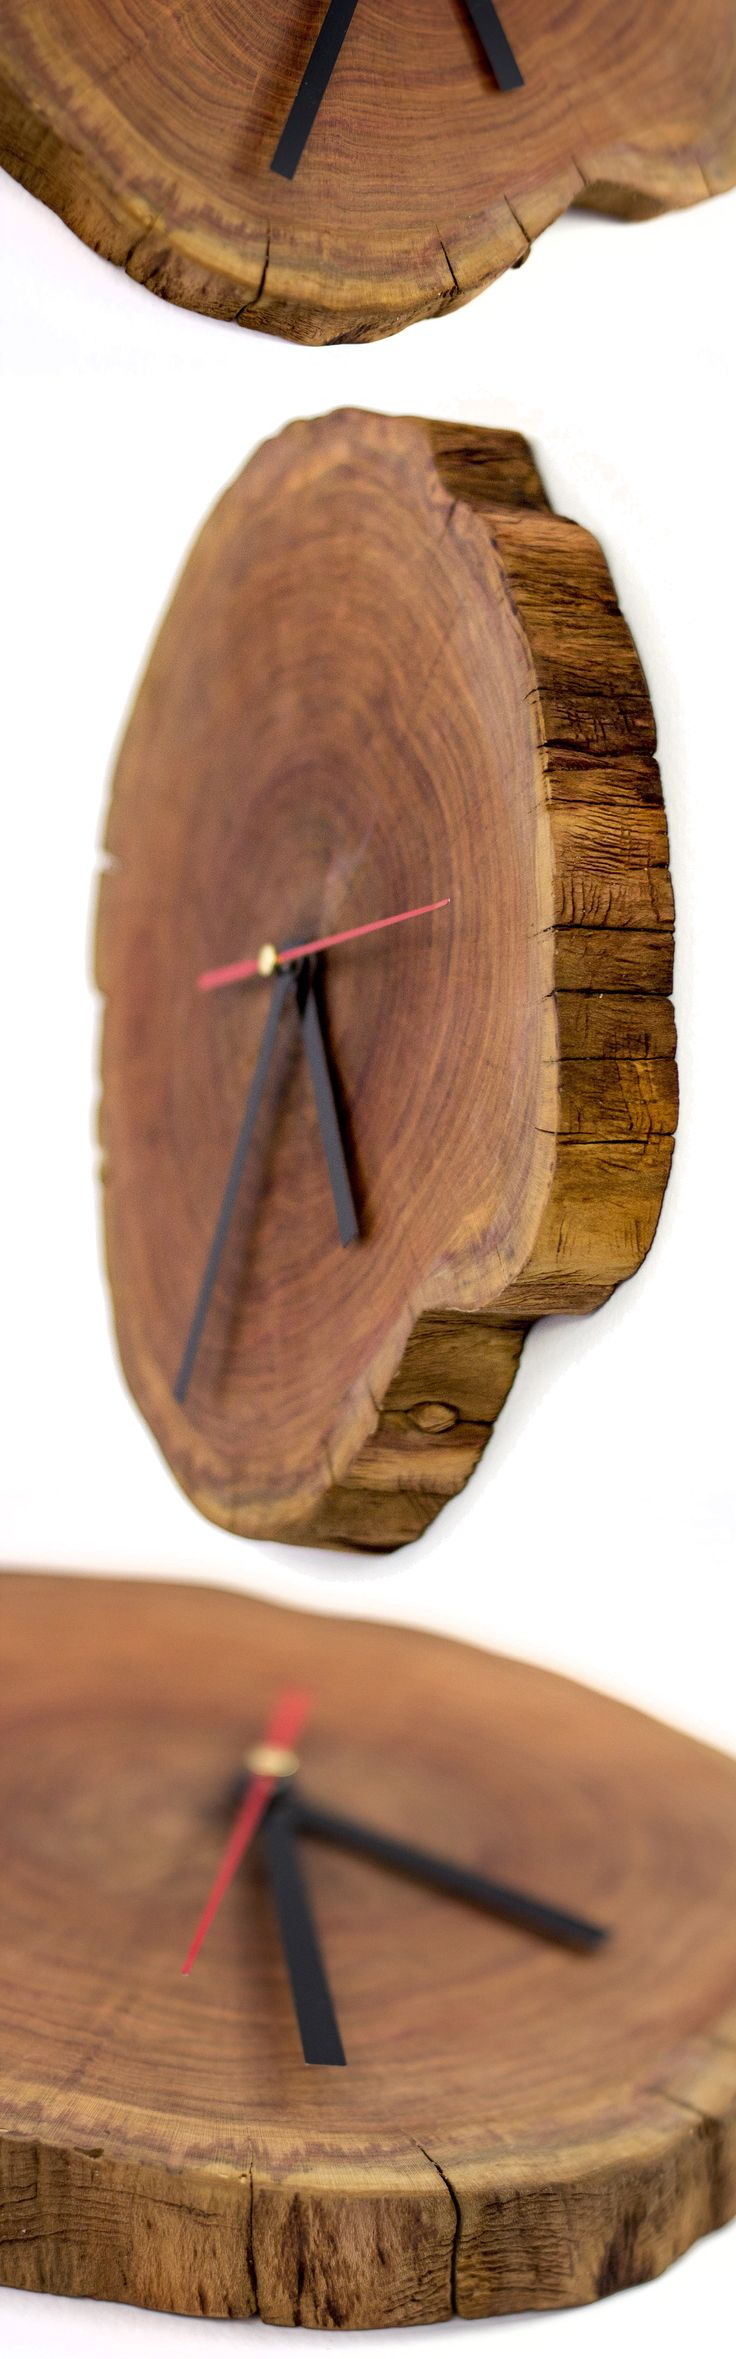 Wooden clock Kitchen Wall Clocks Home Decor Vintage Clock Antique Wall Clocks Mantel Clock Retro Rustic Gift